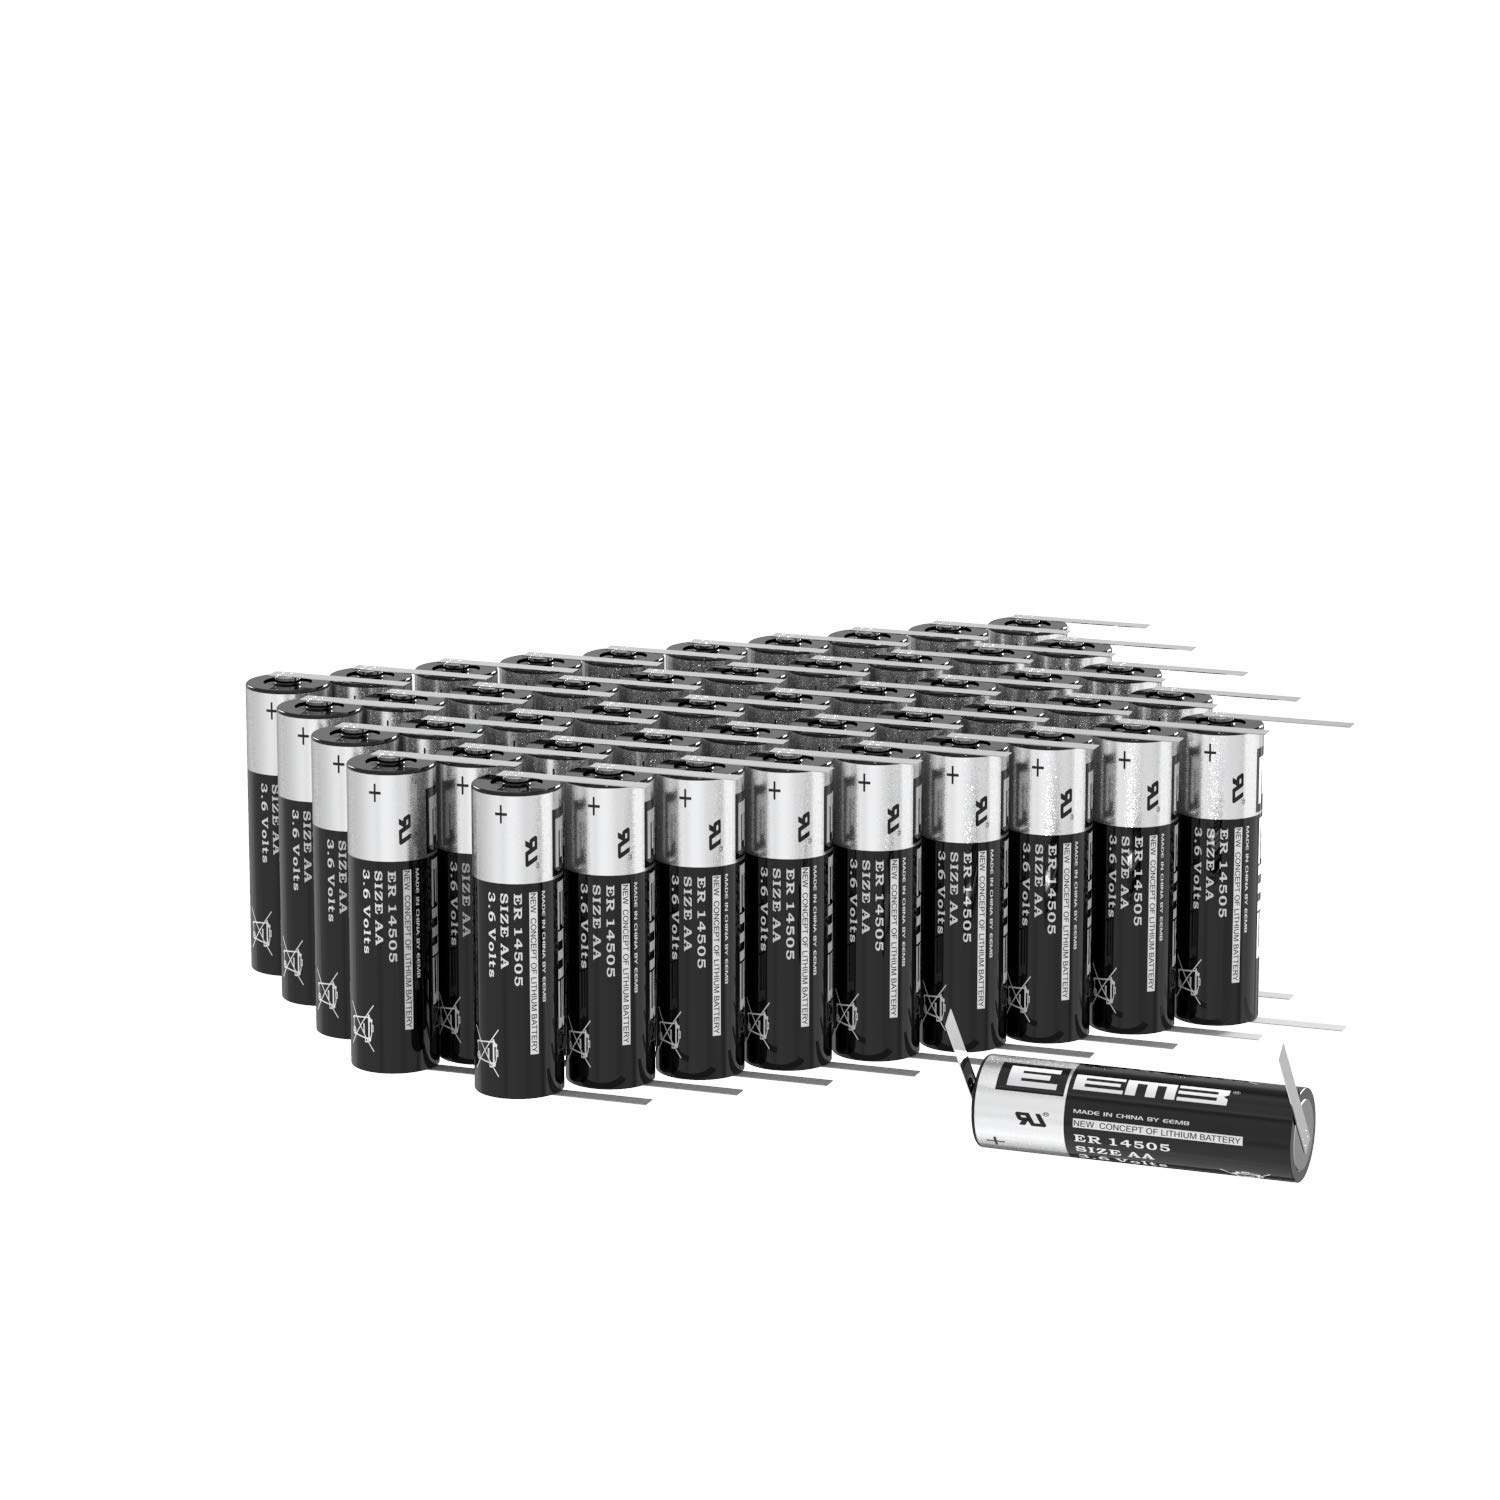 EEMB 3.6V AA Lithium Battery with Tabs ER14505 2600mAh High Capacity Li-SOCl2 Non Rechargeable UL Certified 3.6Volt Lithium Thionyl Chloride Batteries (50)